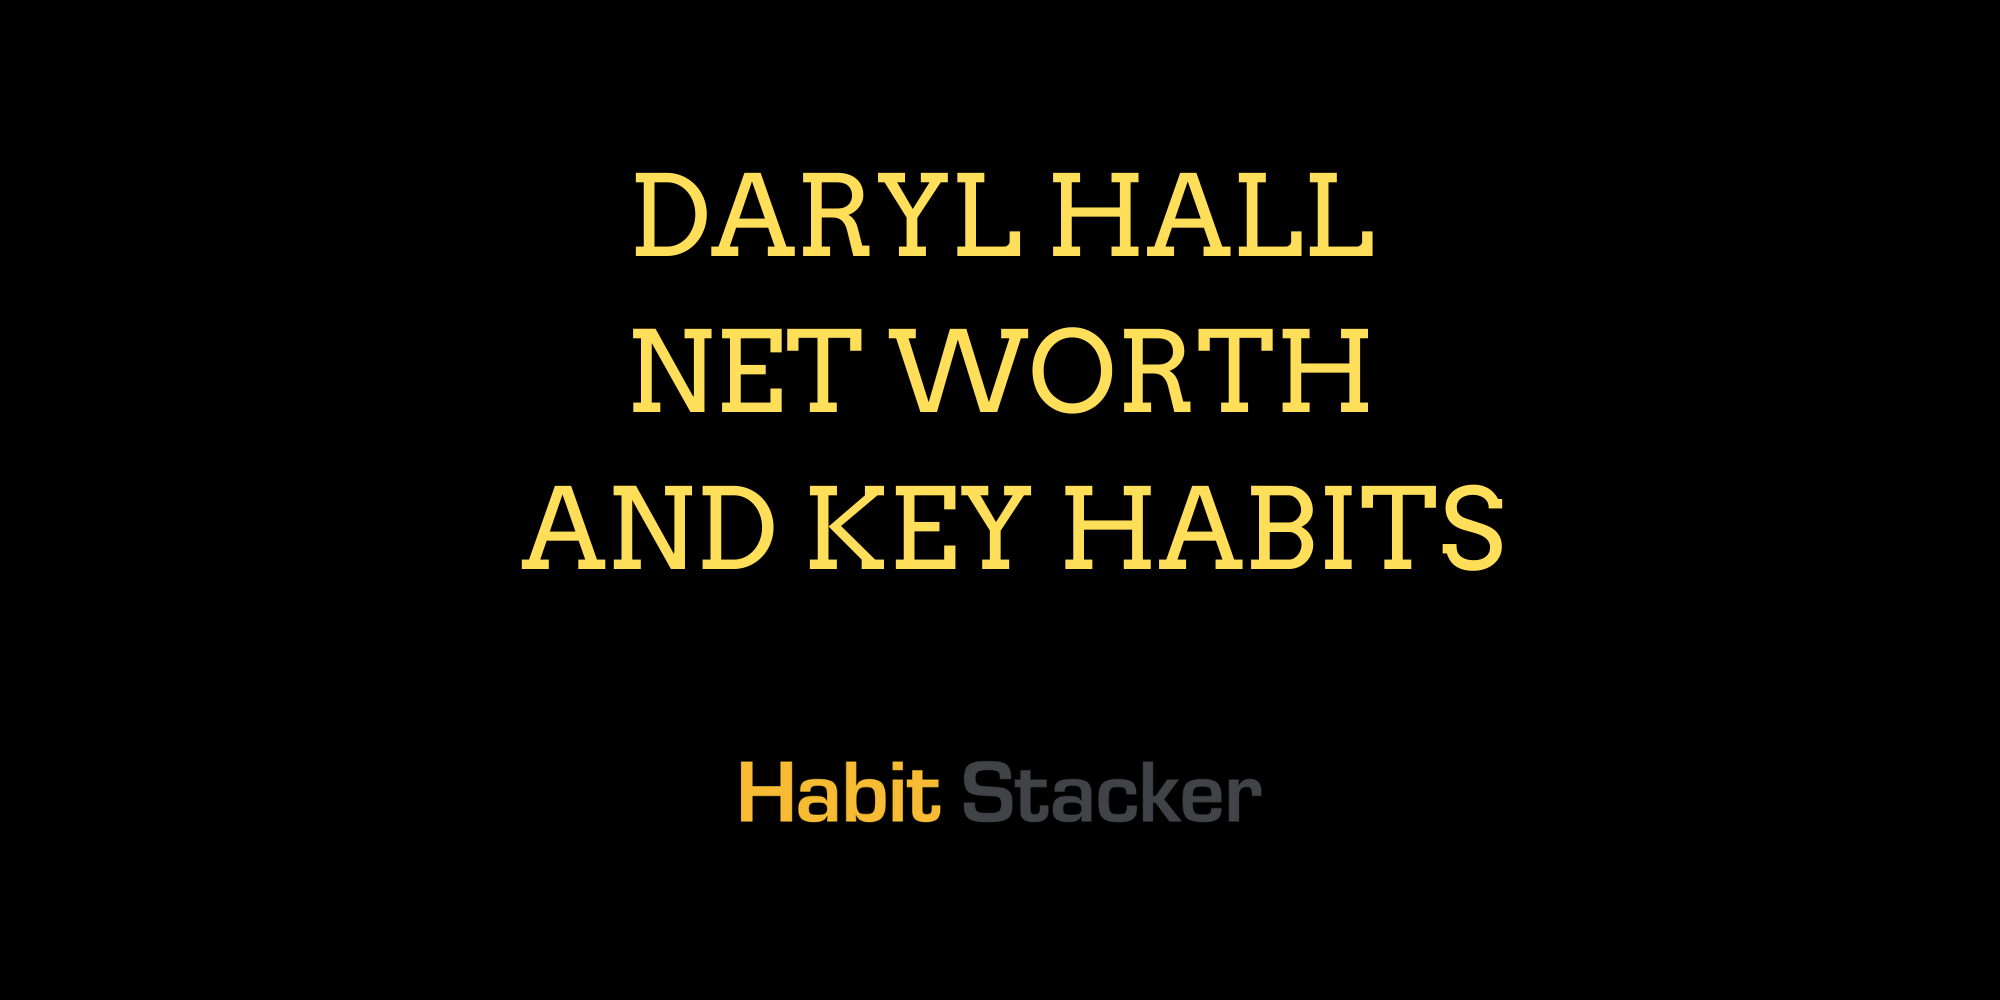 Daryl Hall Net Worth and Key Habits